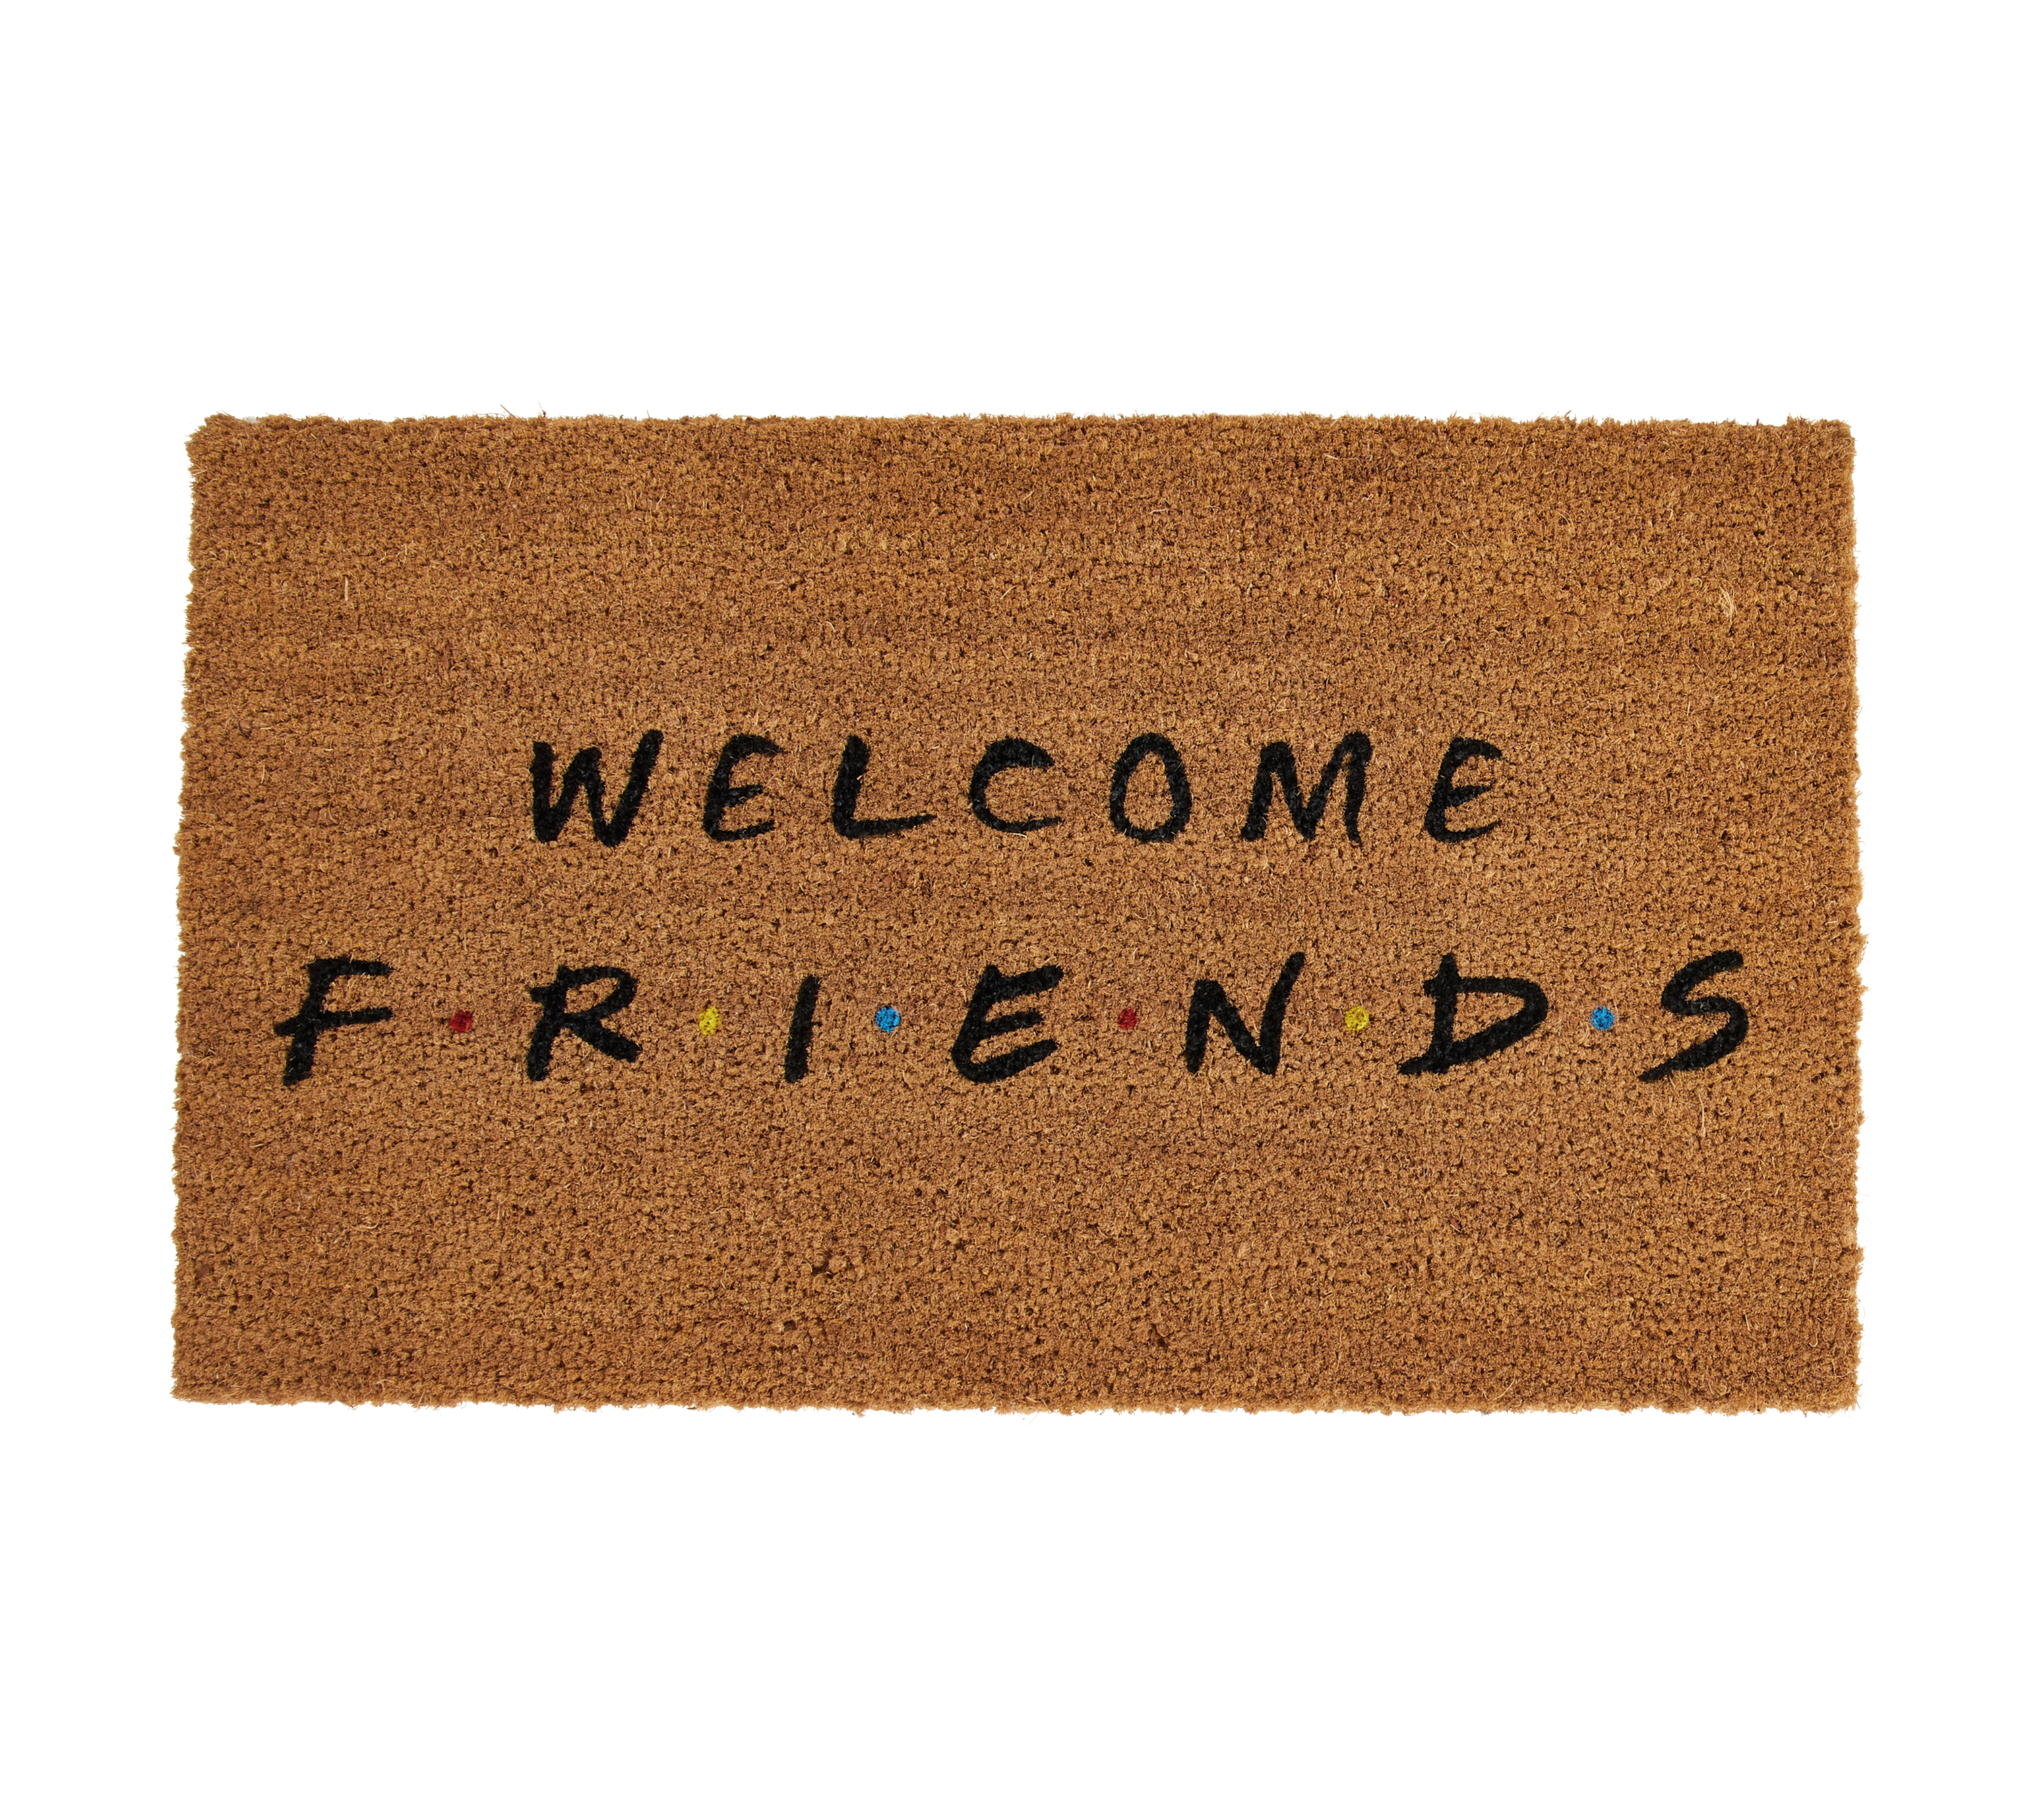 'Welcome Friends' doormat